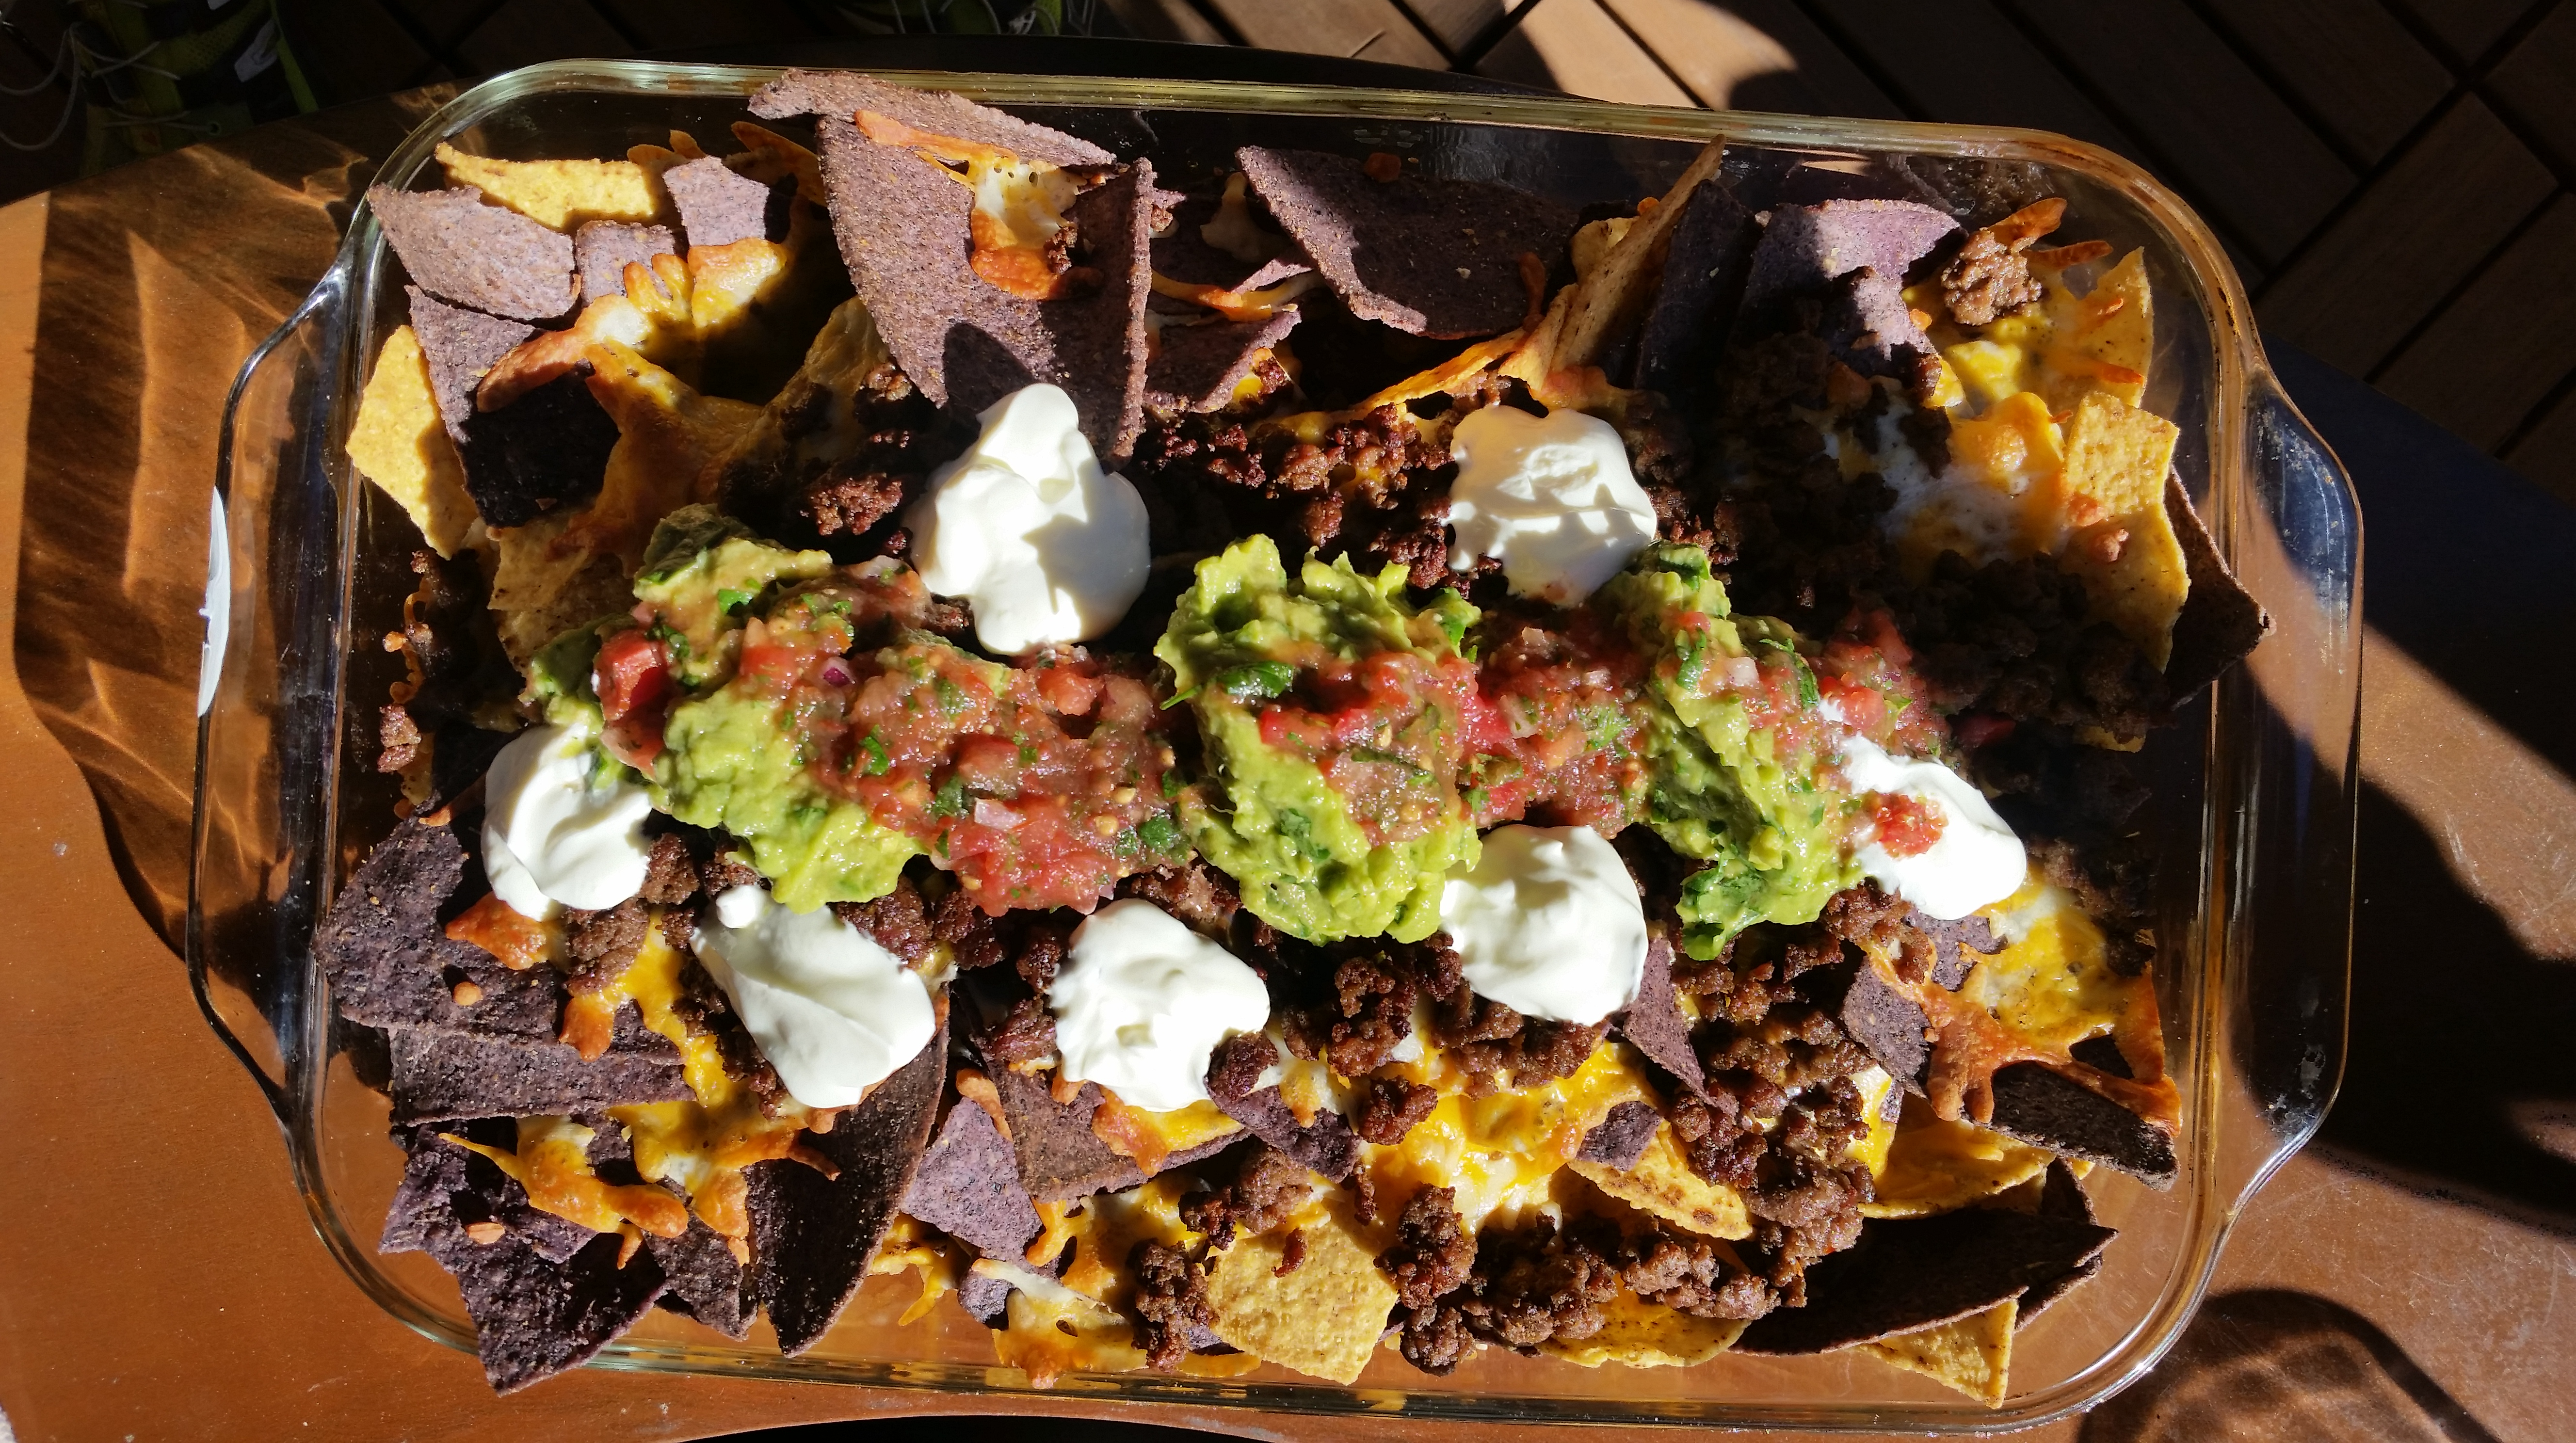 2014 11 27 11 48 41 - Thanksgiving Nachos: I Didn't Really Cook This Year